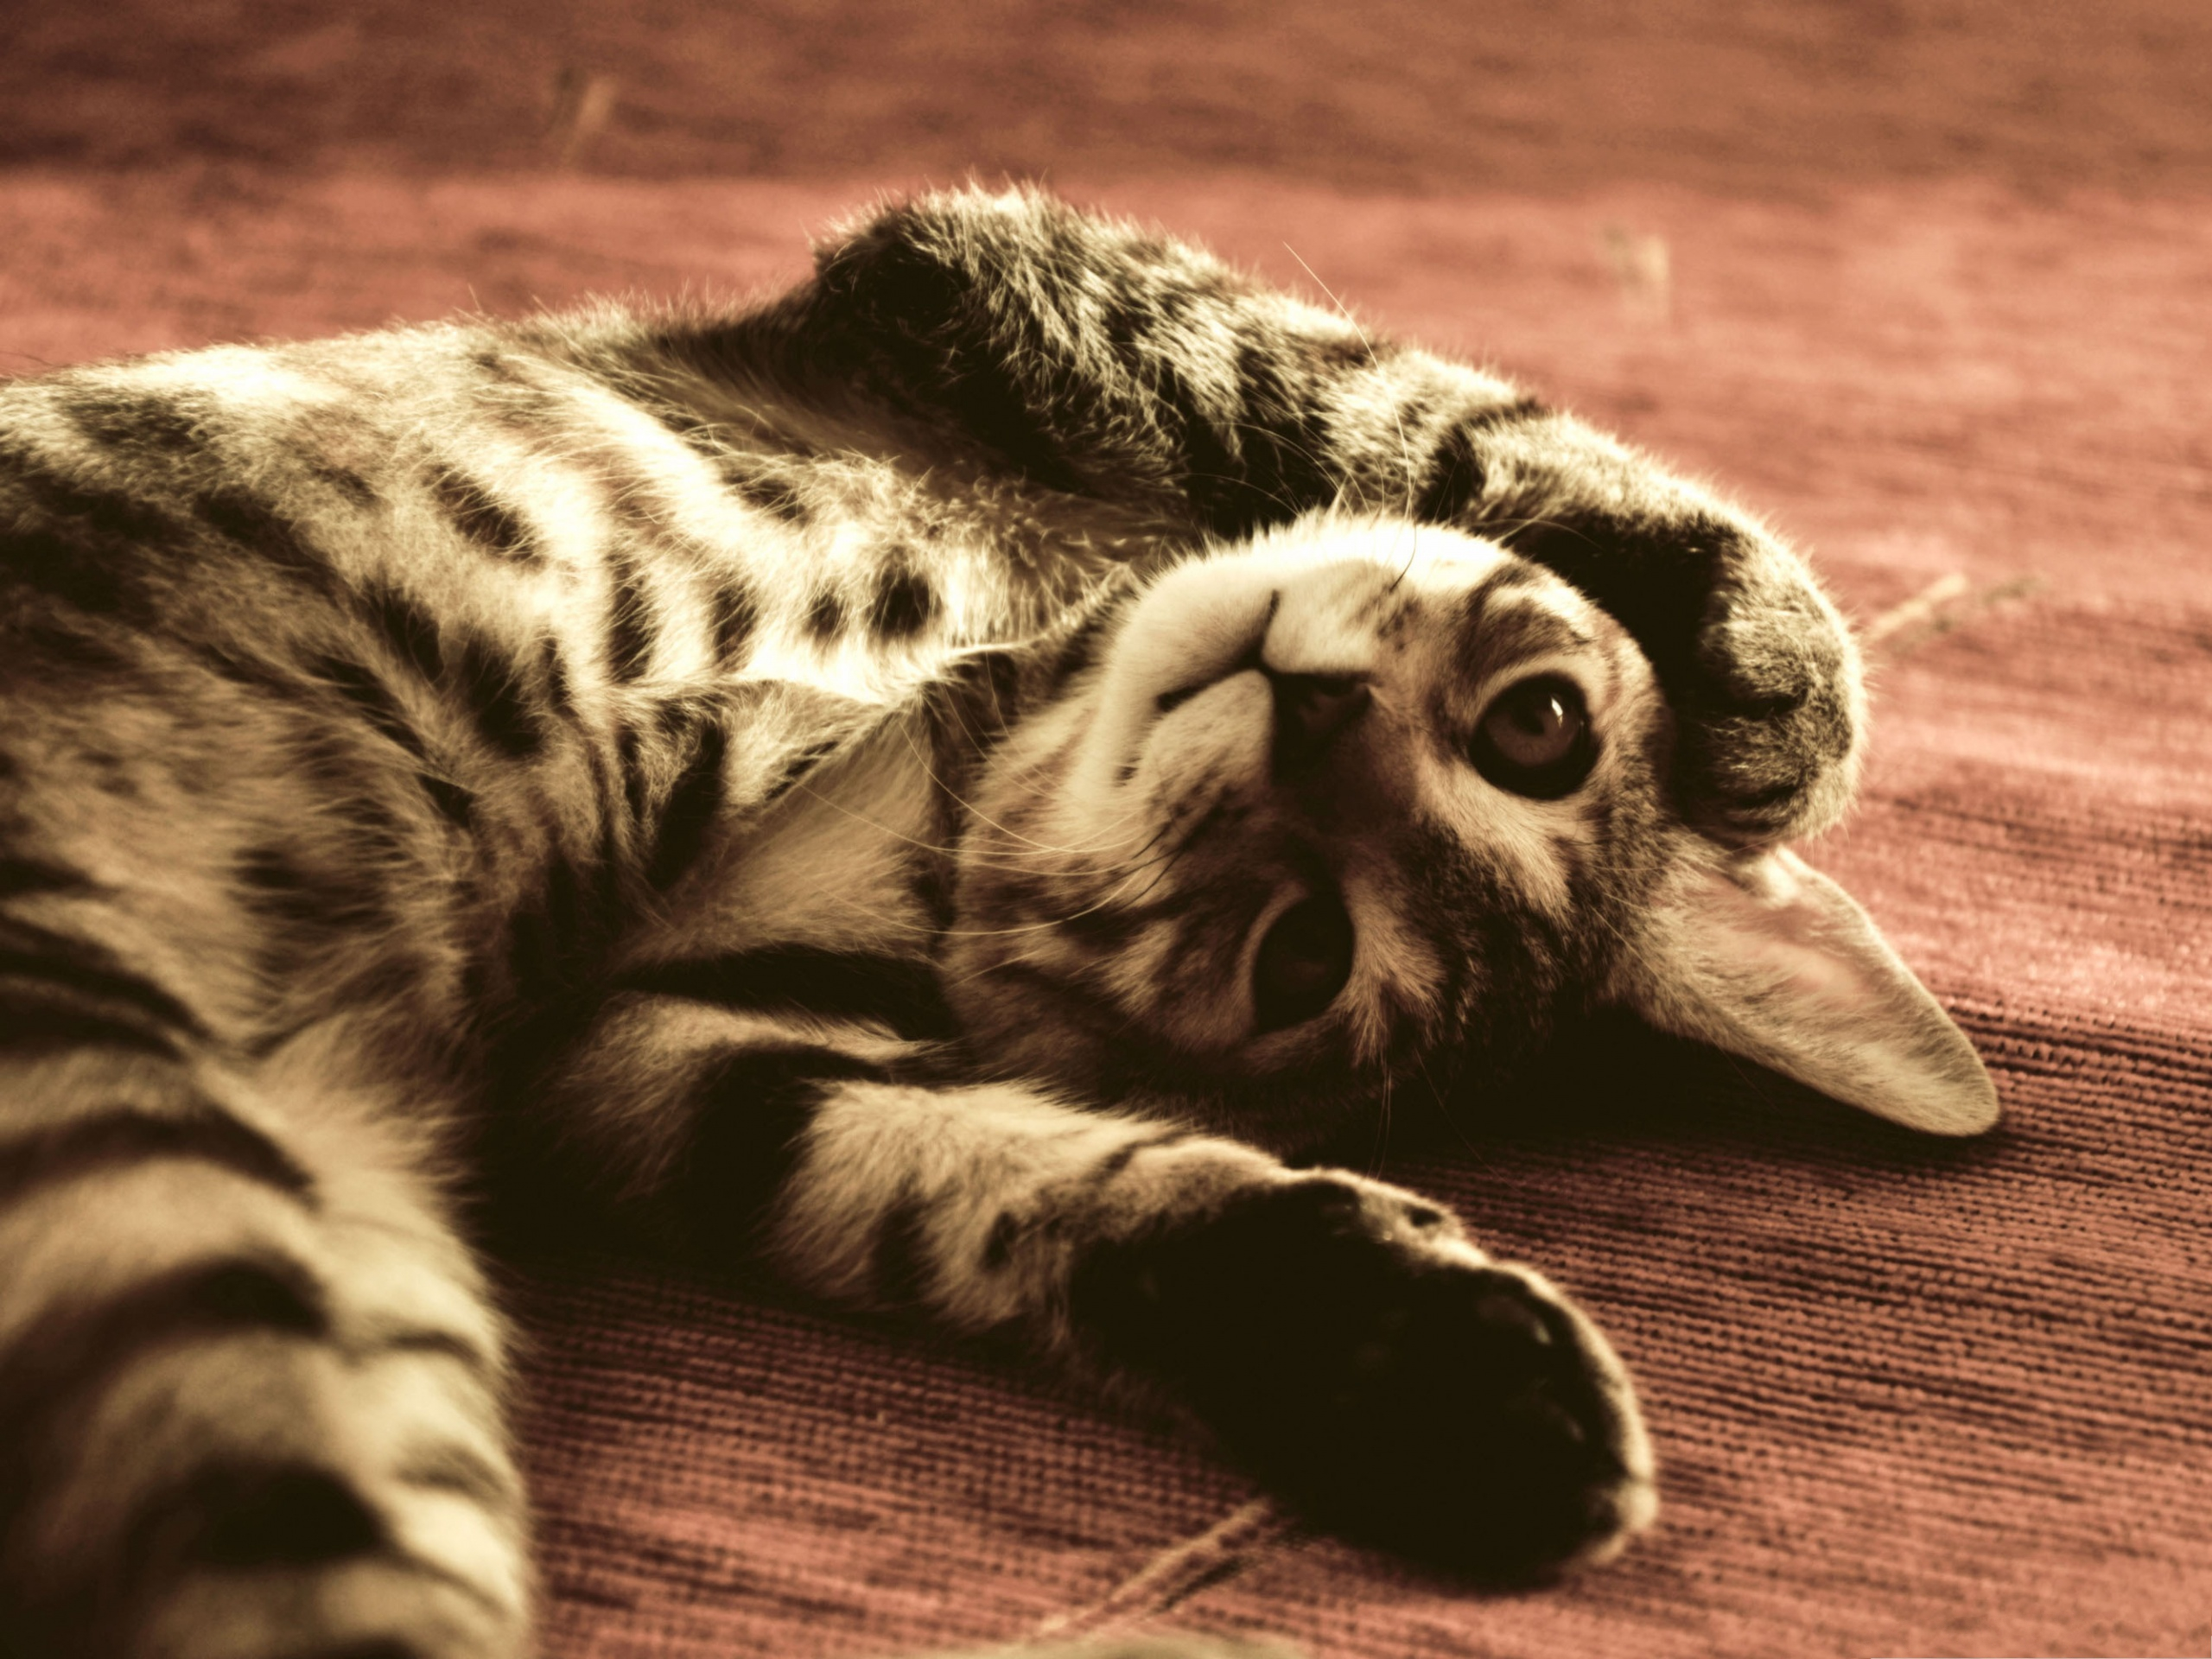 click to free download the wallpaper--Funny Cat Image, Kitten Lying on Floor, Long Stretched Body  2560X1920 free wallpaper download